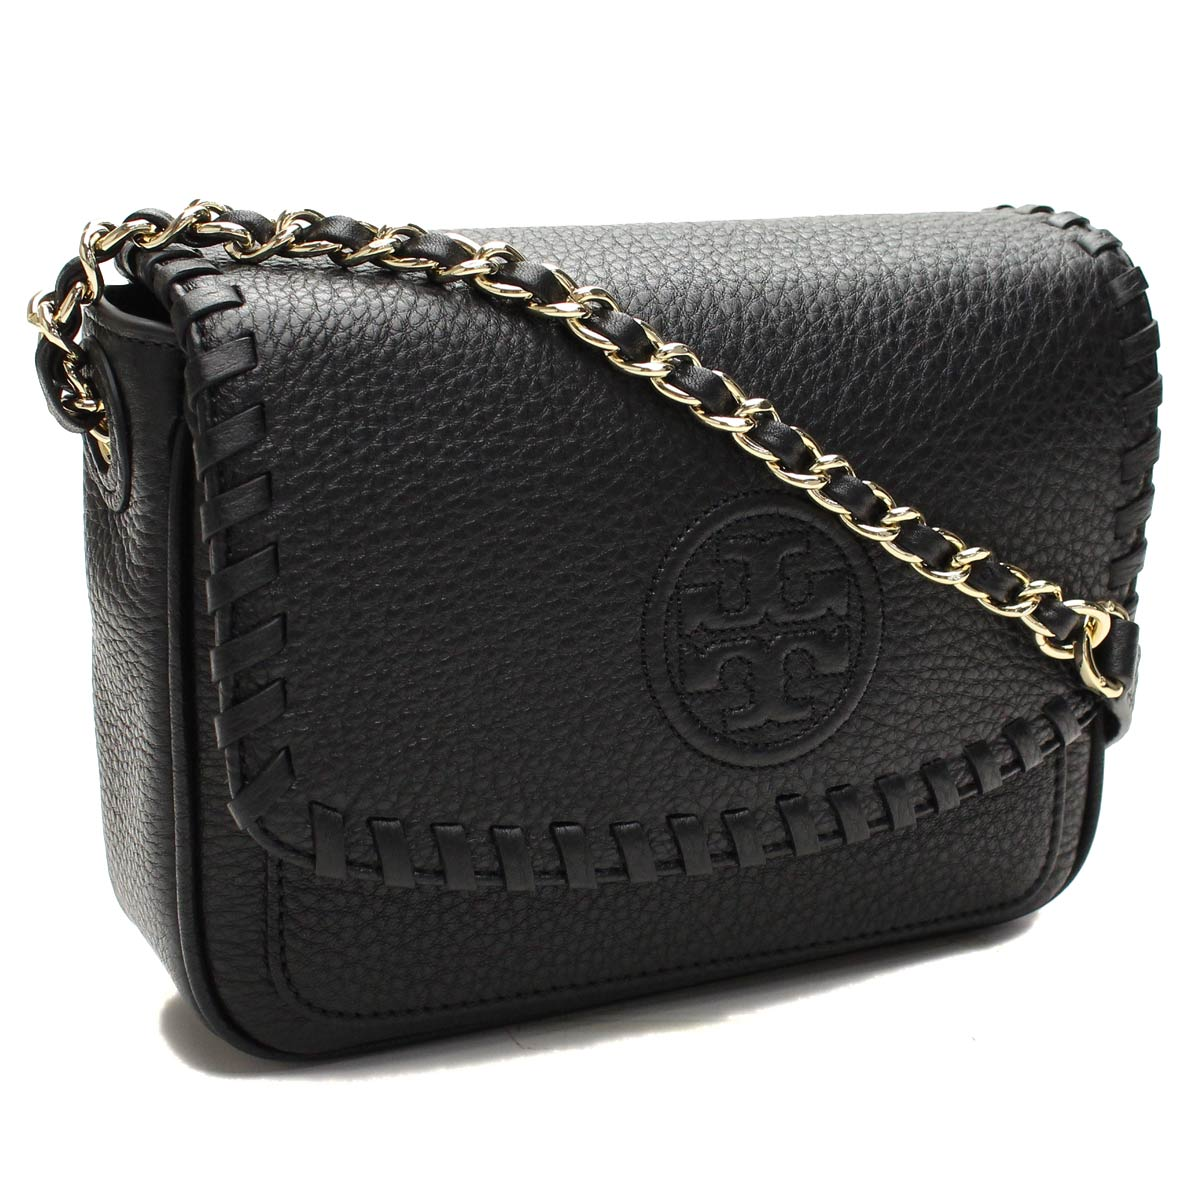 d7c02d42b27d Bighit The total brand wholesale  Tory Burch (TORY BURCH) MARION diagonally  over the shoulder bag PEBBLE LEATHER formal black-001 BLACK( taxfree send  by ...